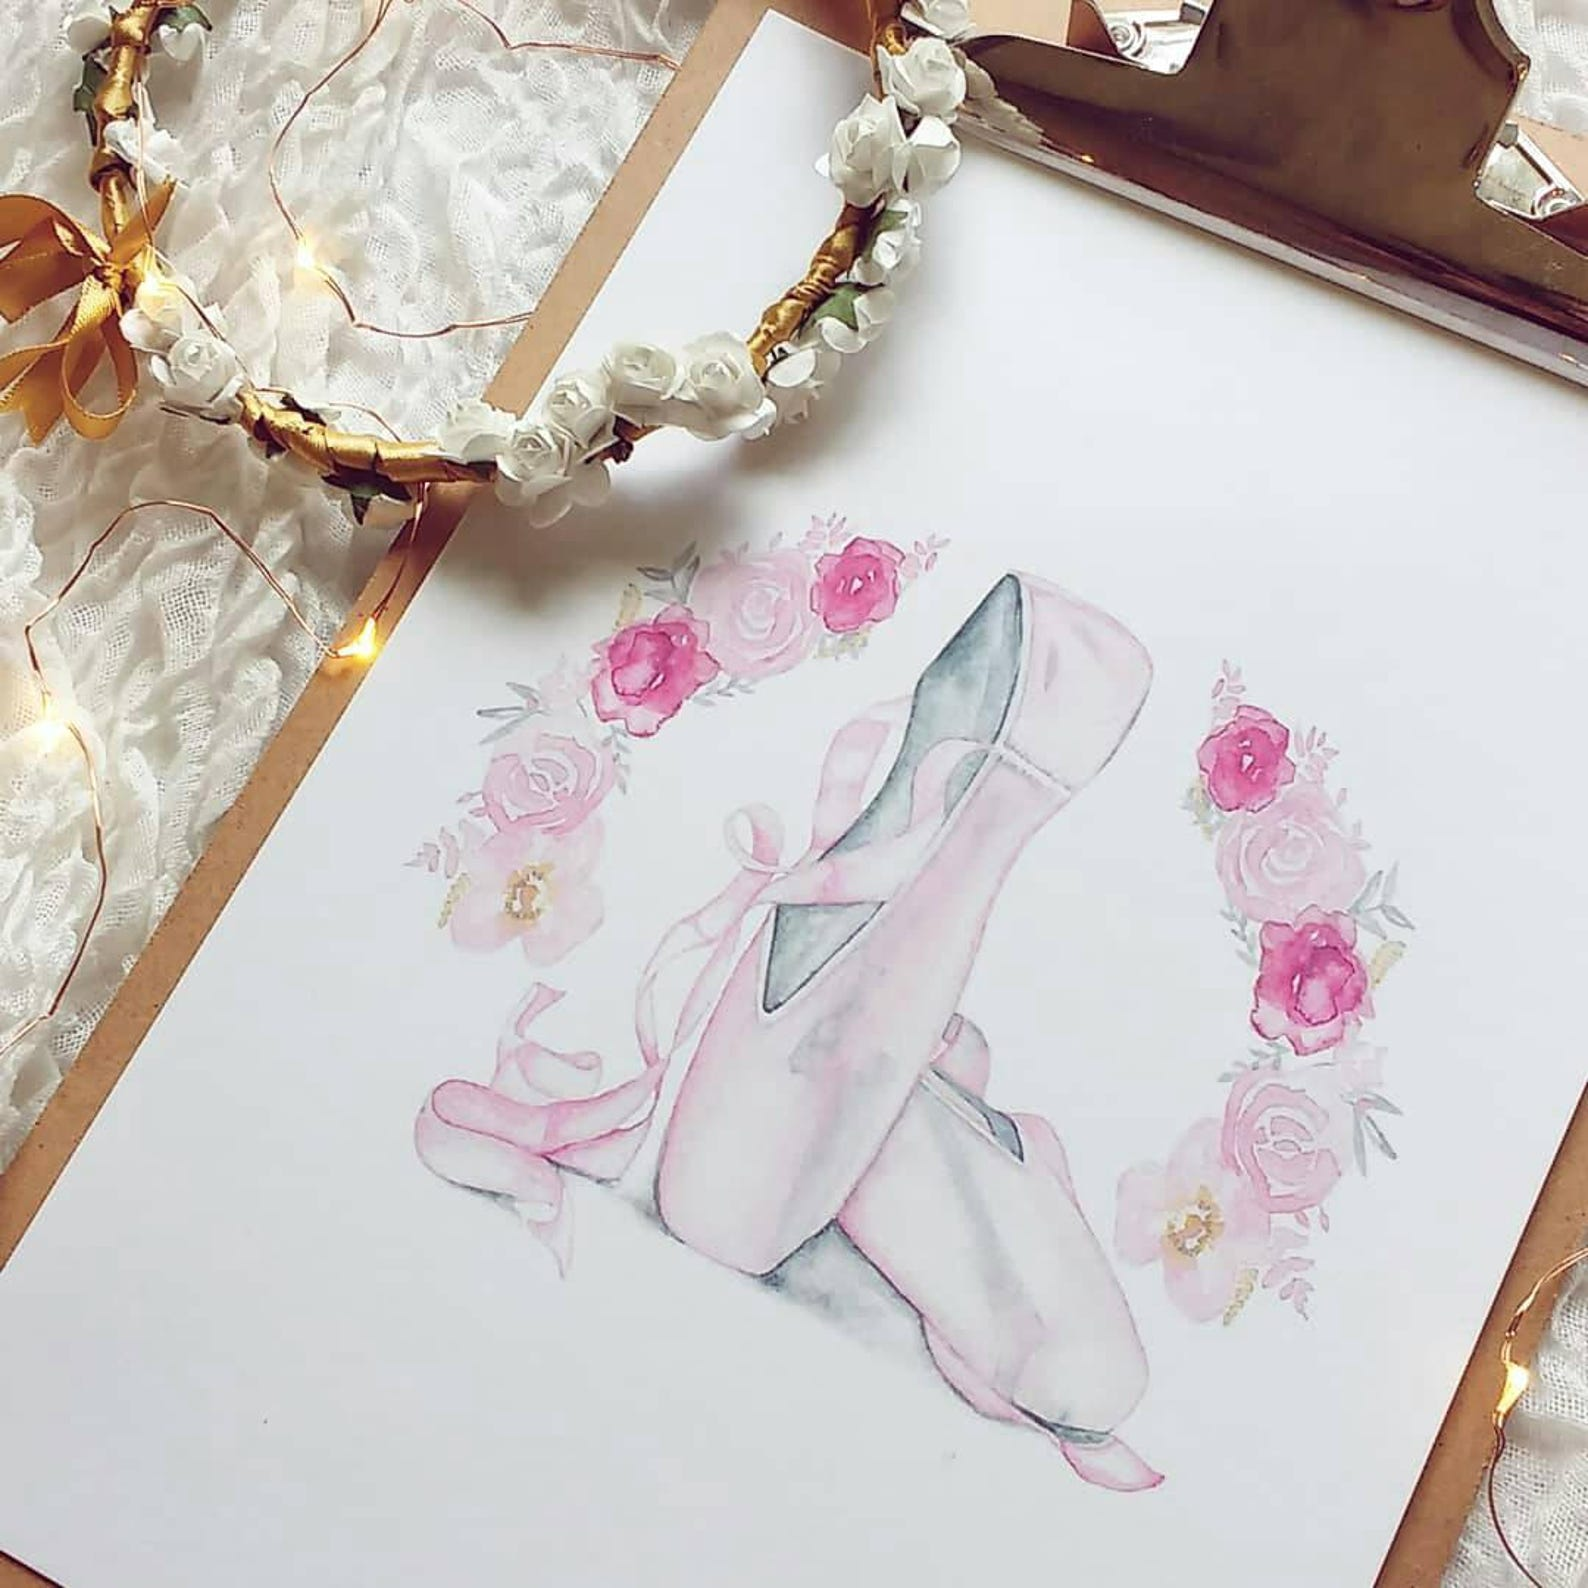 ballet shoes fine art print girls children pink painting watercolour drawing sketch art giclee illustration modern scandi dance